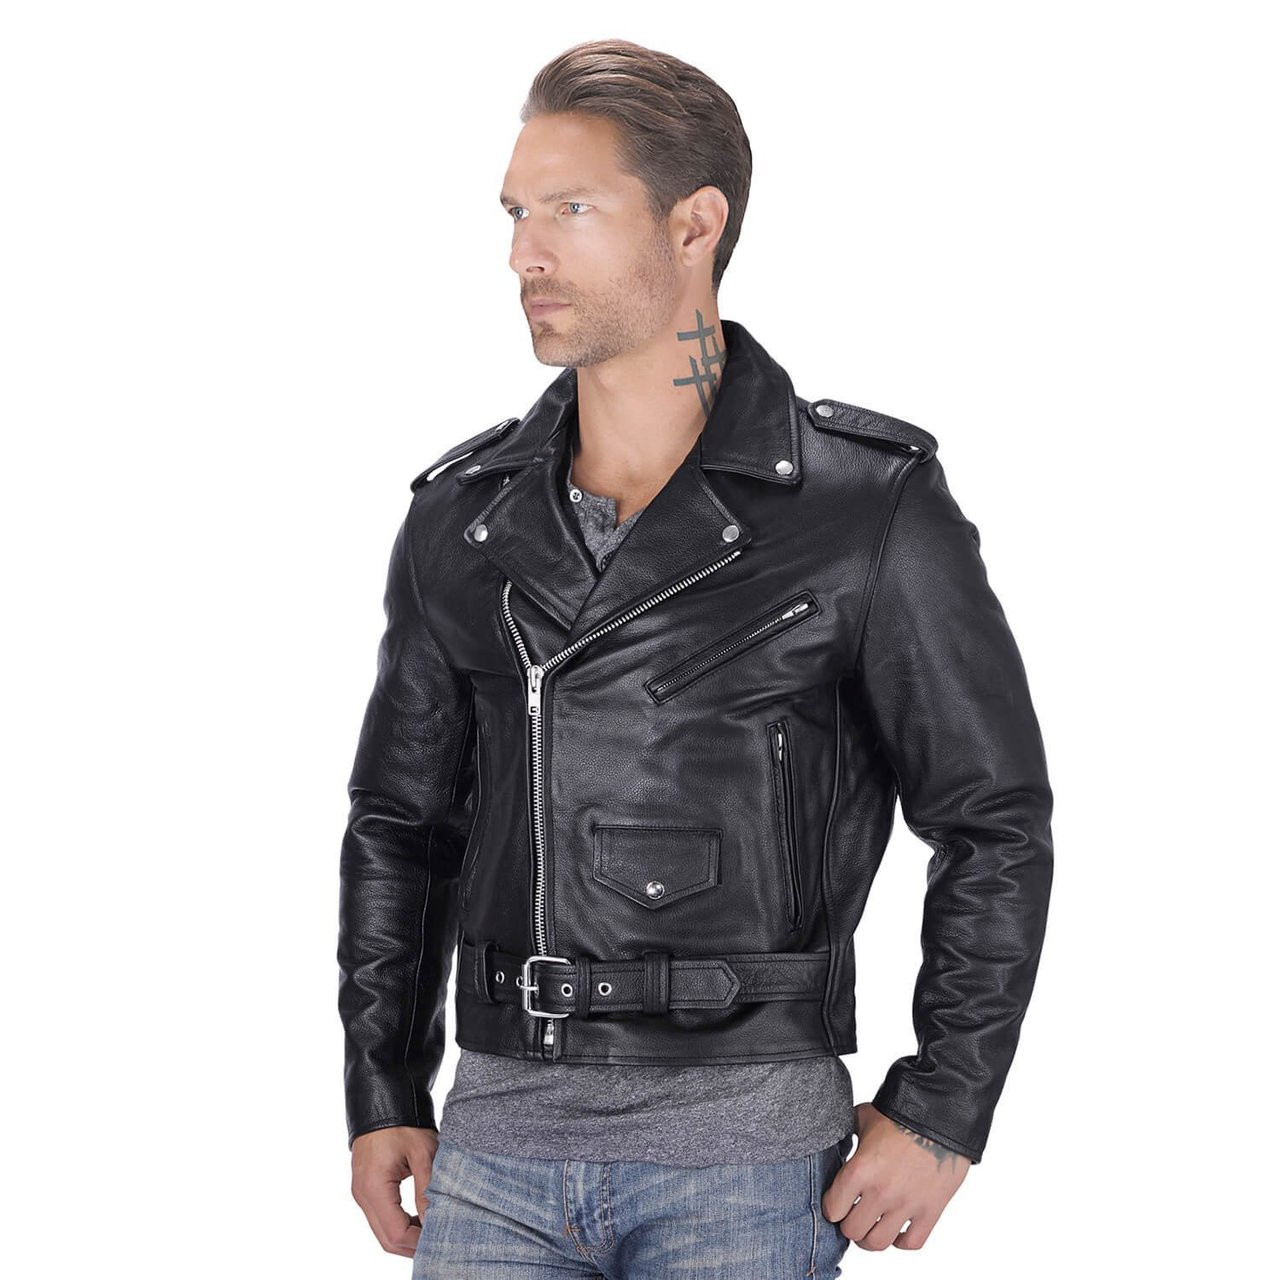 Biker leather jacket dubai